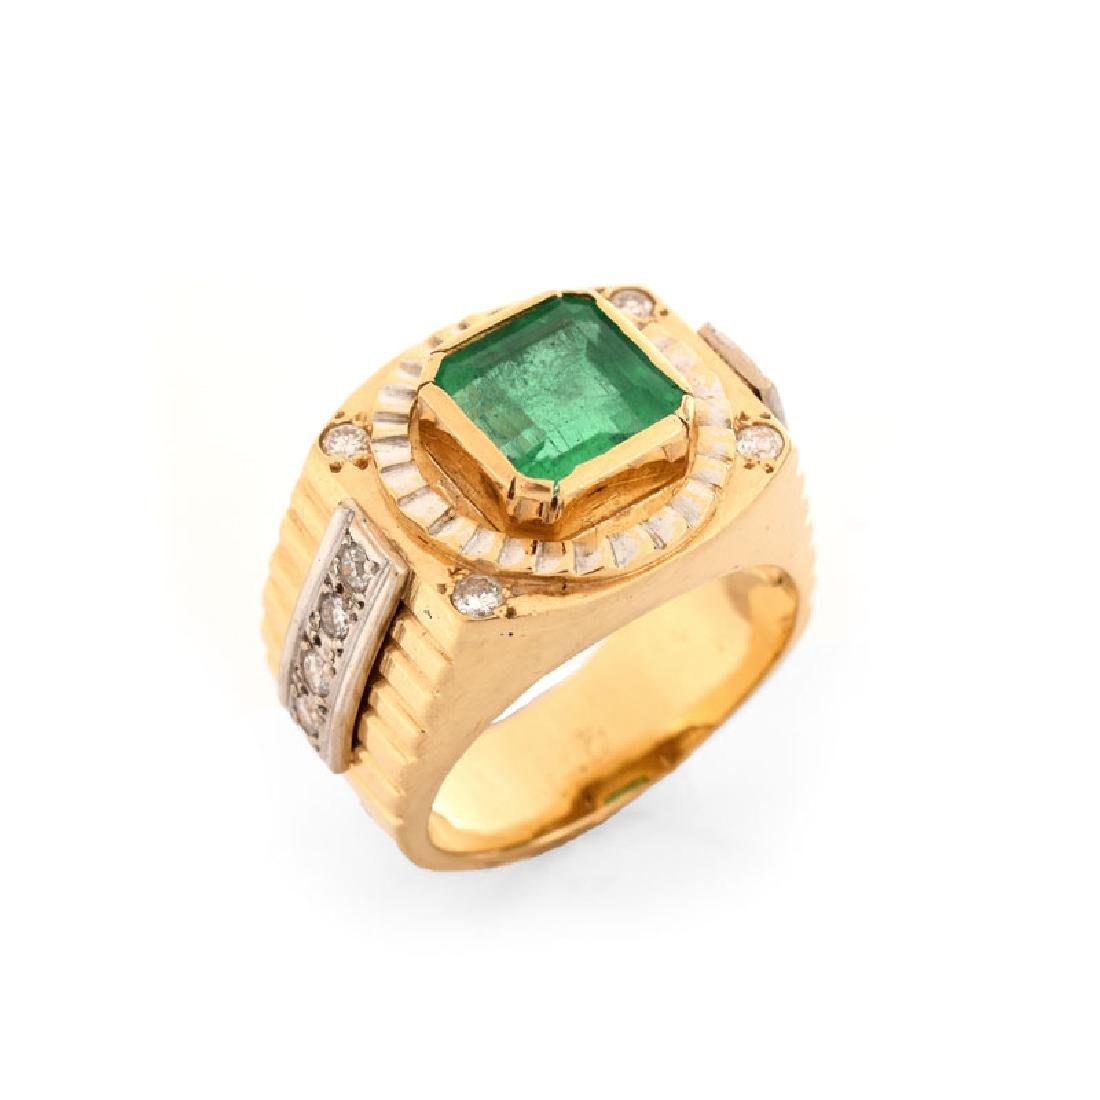 Man's Vintage Approx. 3.50 Carat Emerald, Diamond and